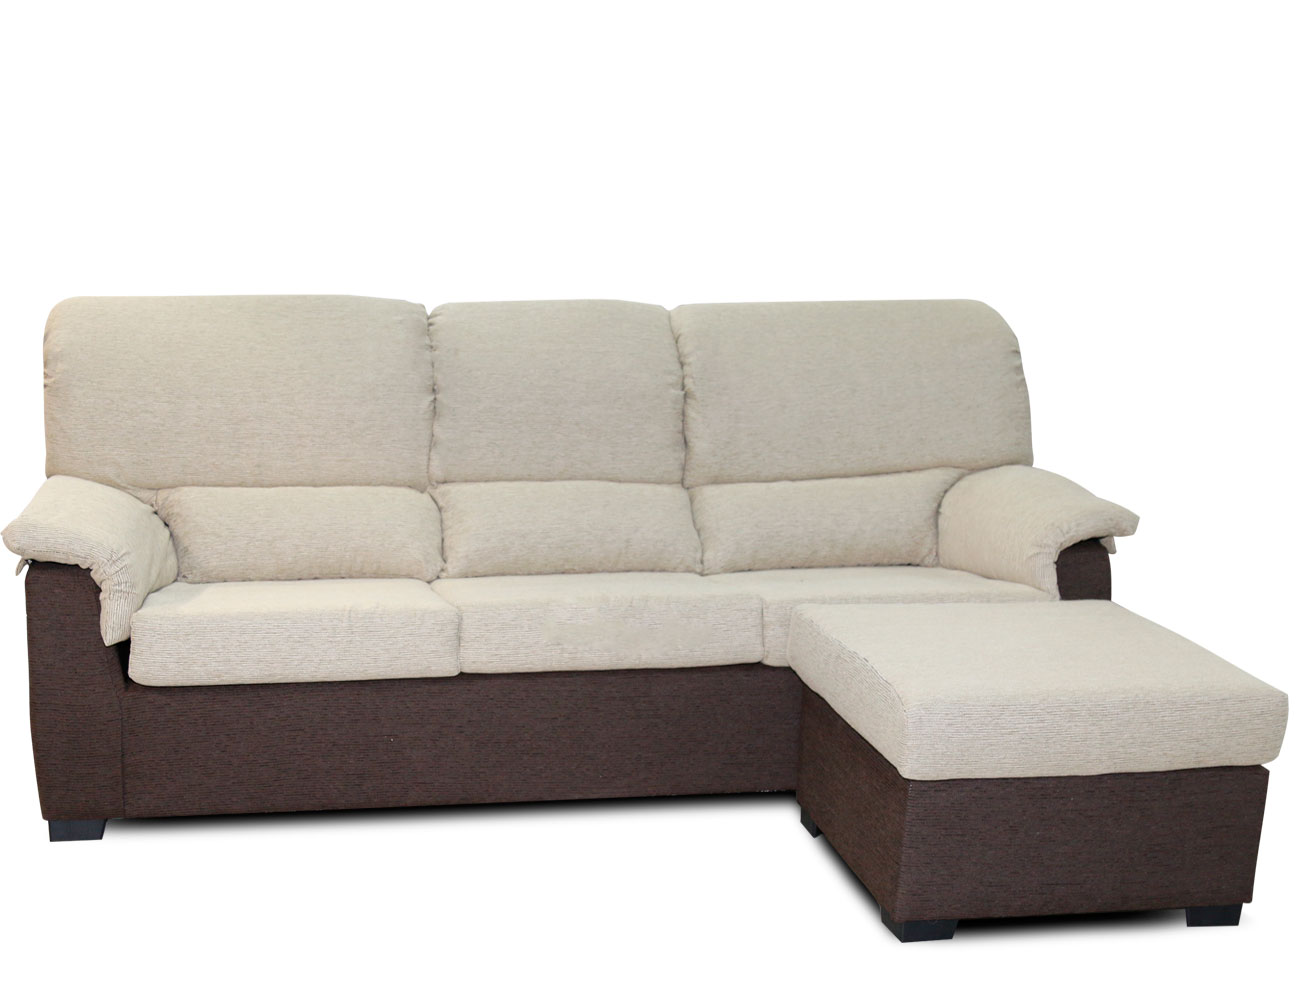 Sof chaiselongue barato con puf reversible 15285 for Sofas de una plaza baratos